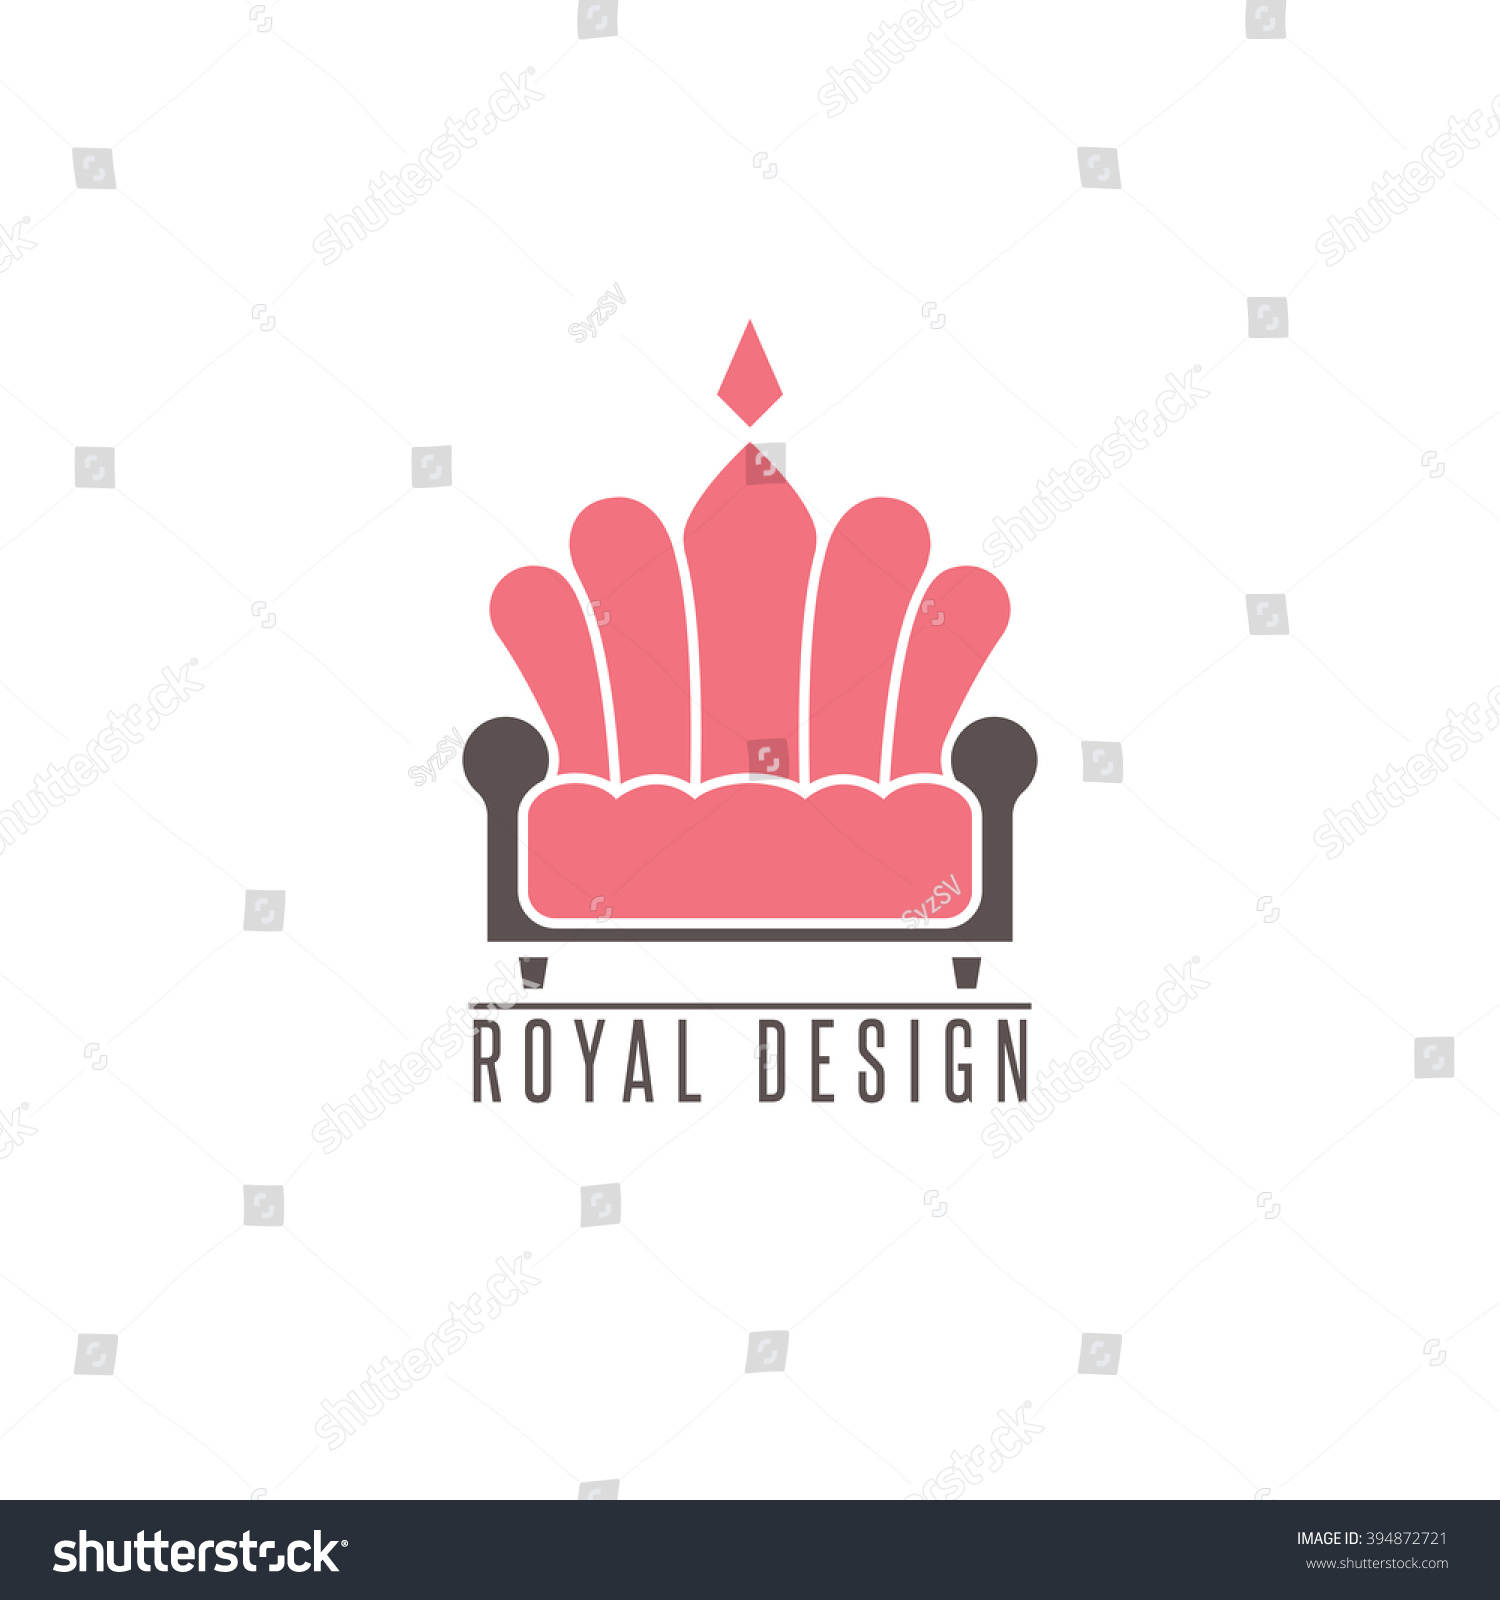 Furniture Logo Sofa, Interior Design Creative Mockup Emblem Shape Crown,  Comfort Divan Icon